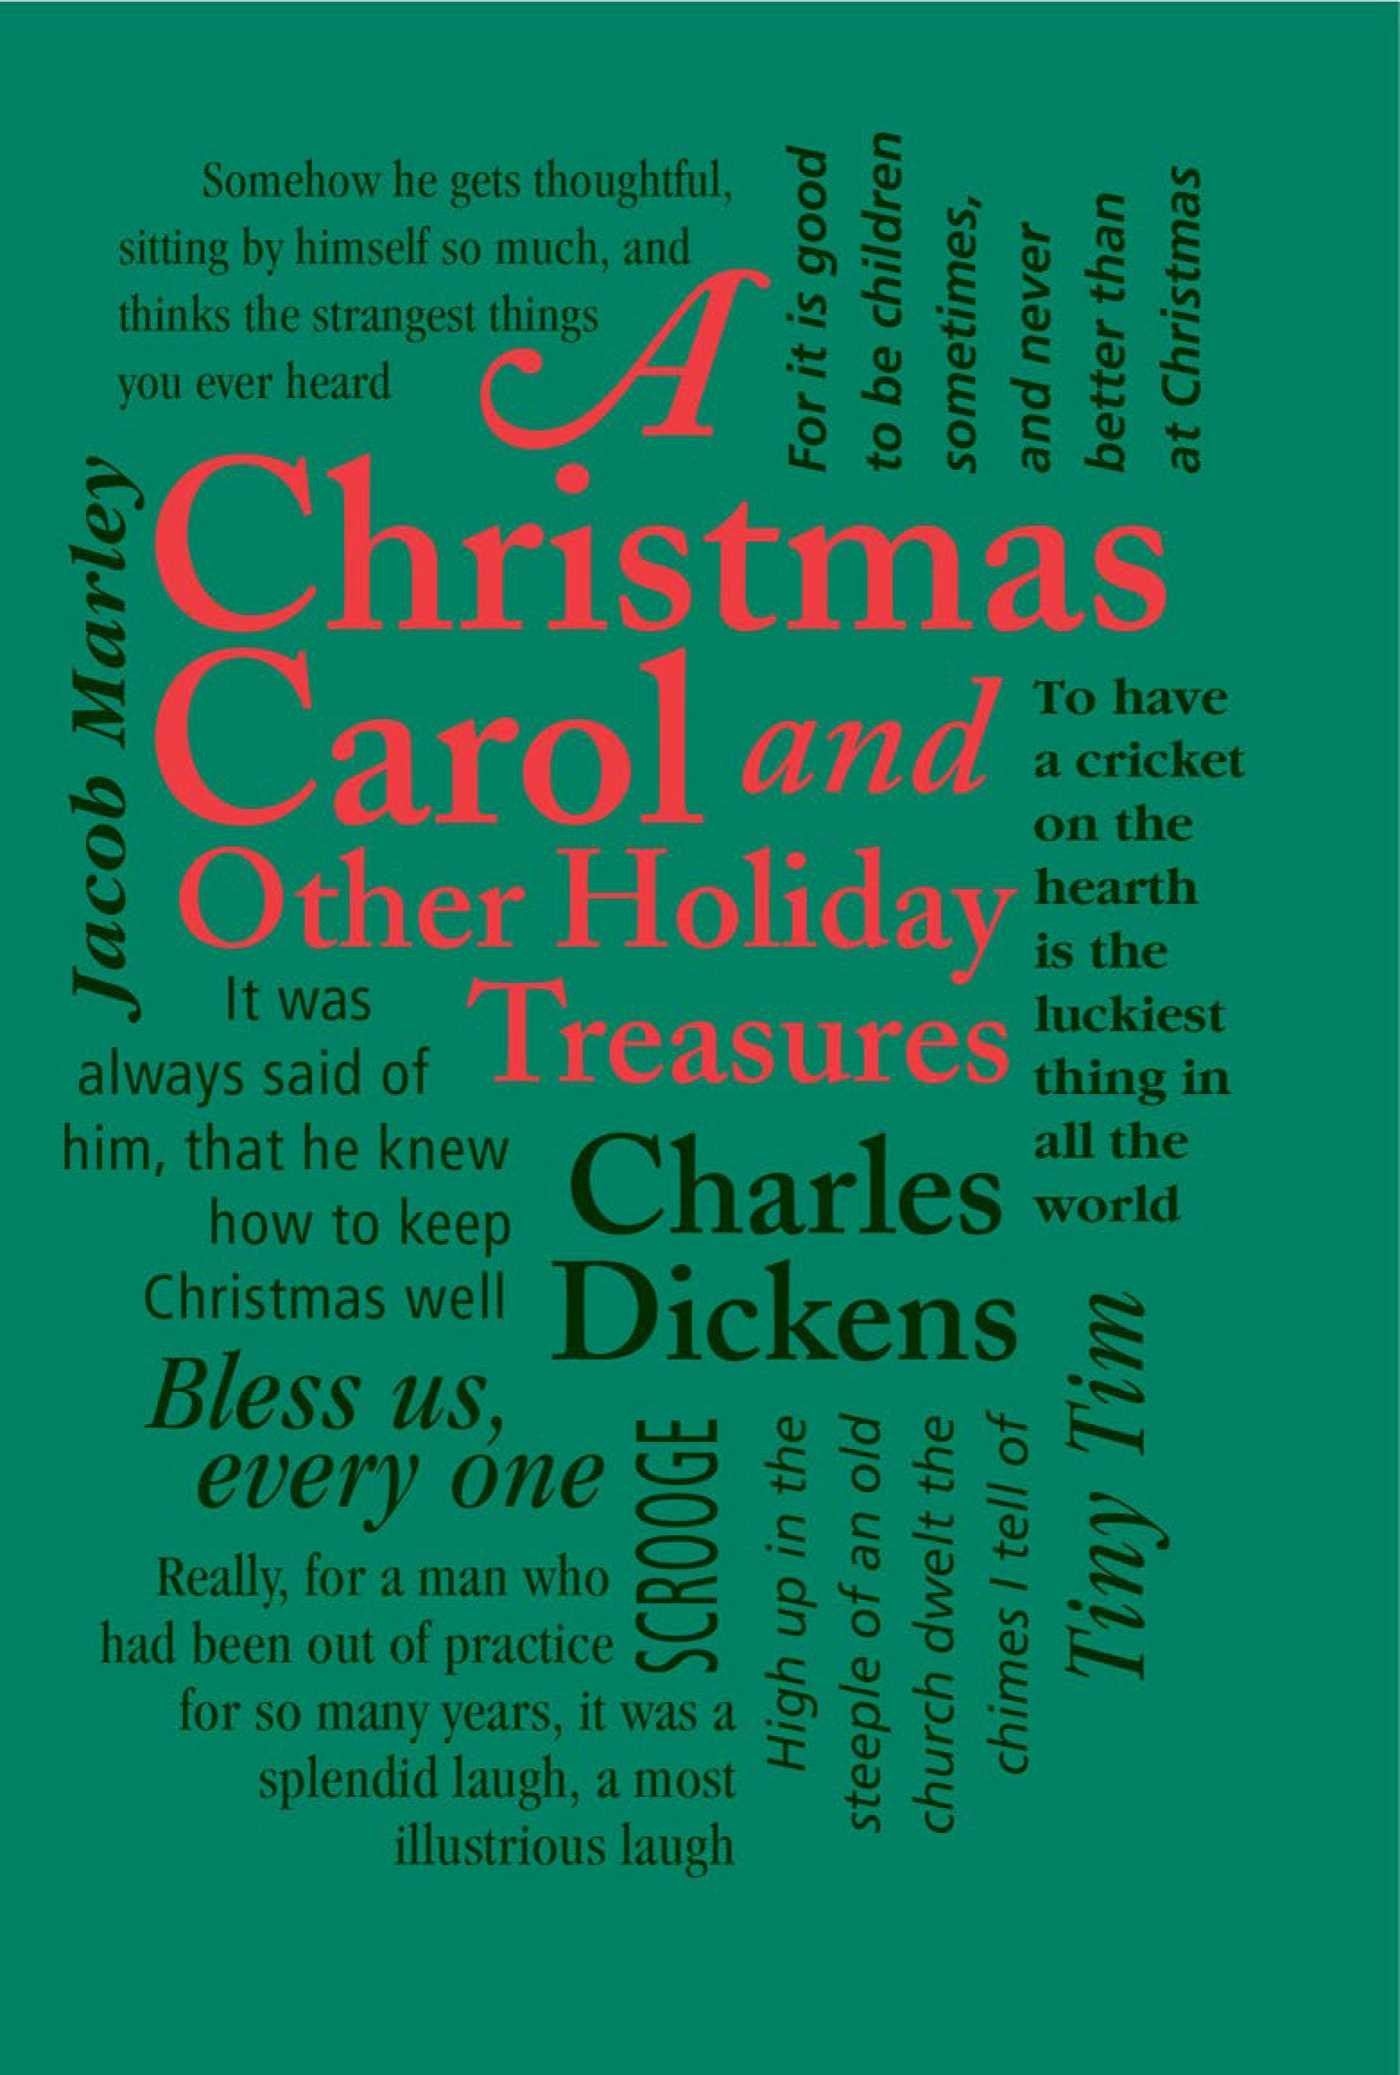 Image result for a christmas carol and other holiday treasures word cloud classics book cover